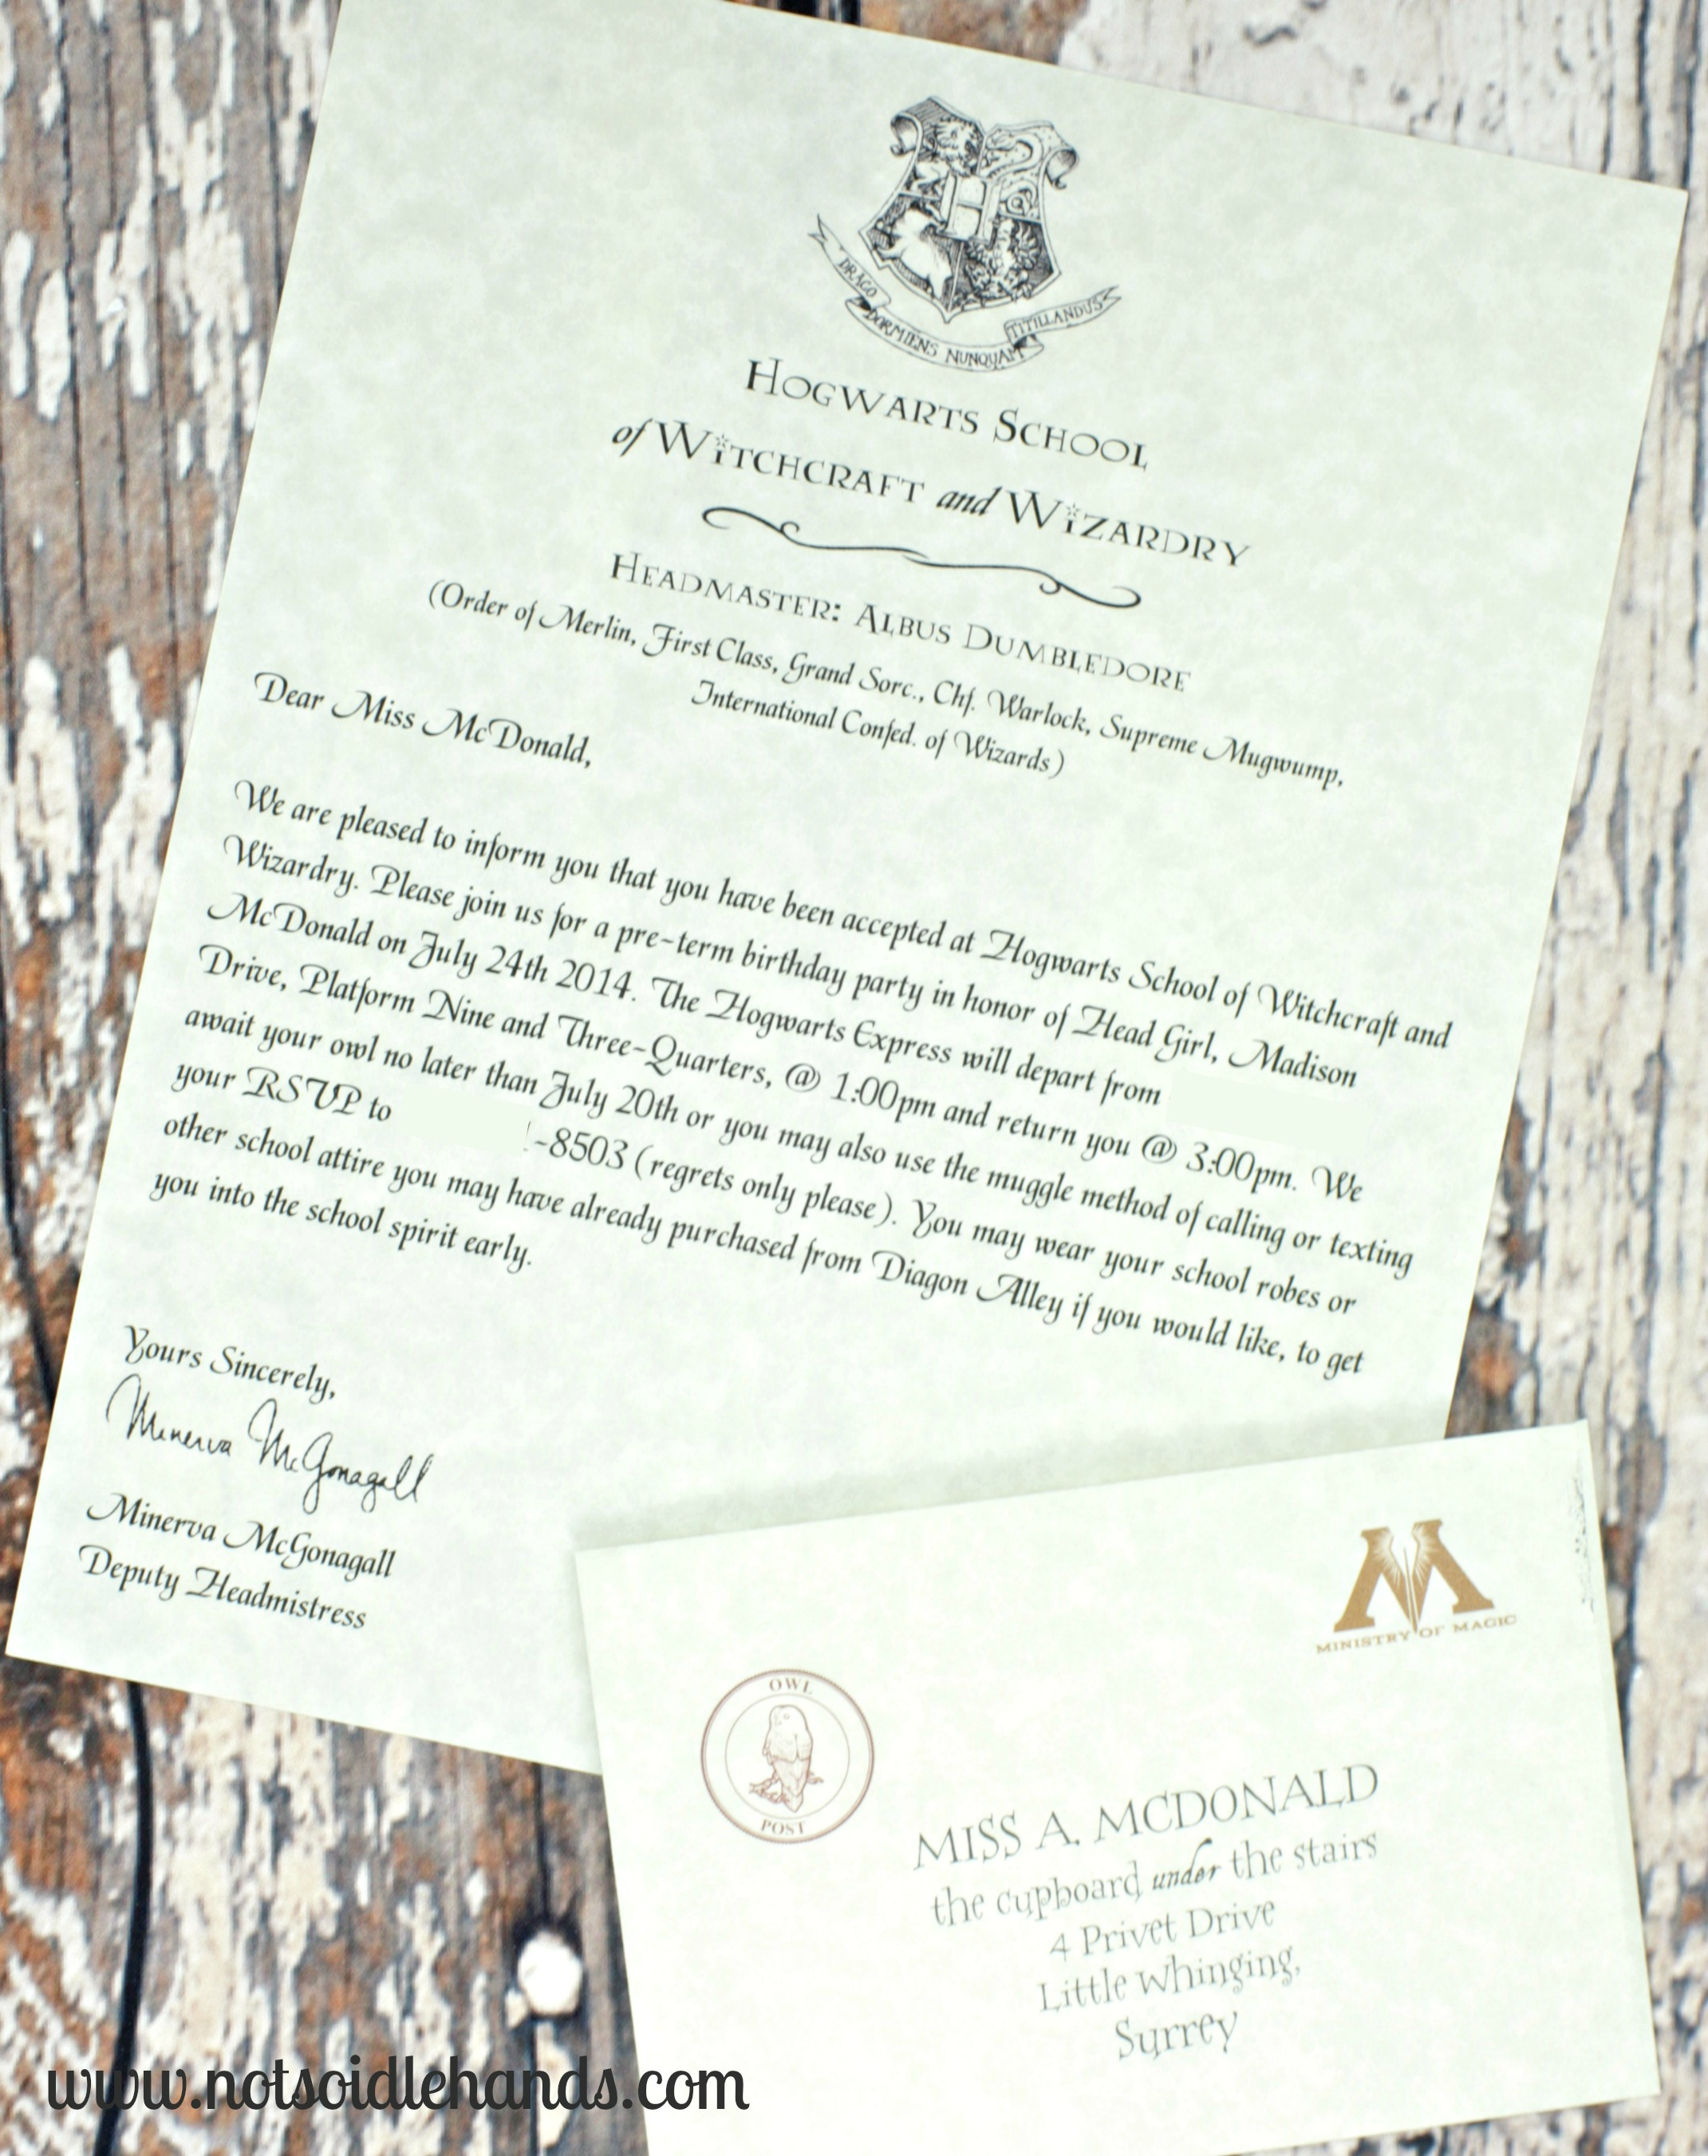 hogwarts letter birthday card ; bunch-ideas-of-hogwarts-letter-template-best-harry-potter-birthday-invitations-and-authentic-acceptance-letter-of-hogwarts-letter-template